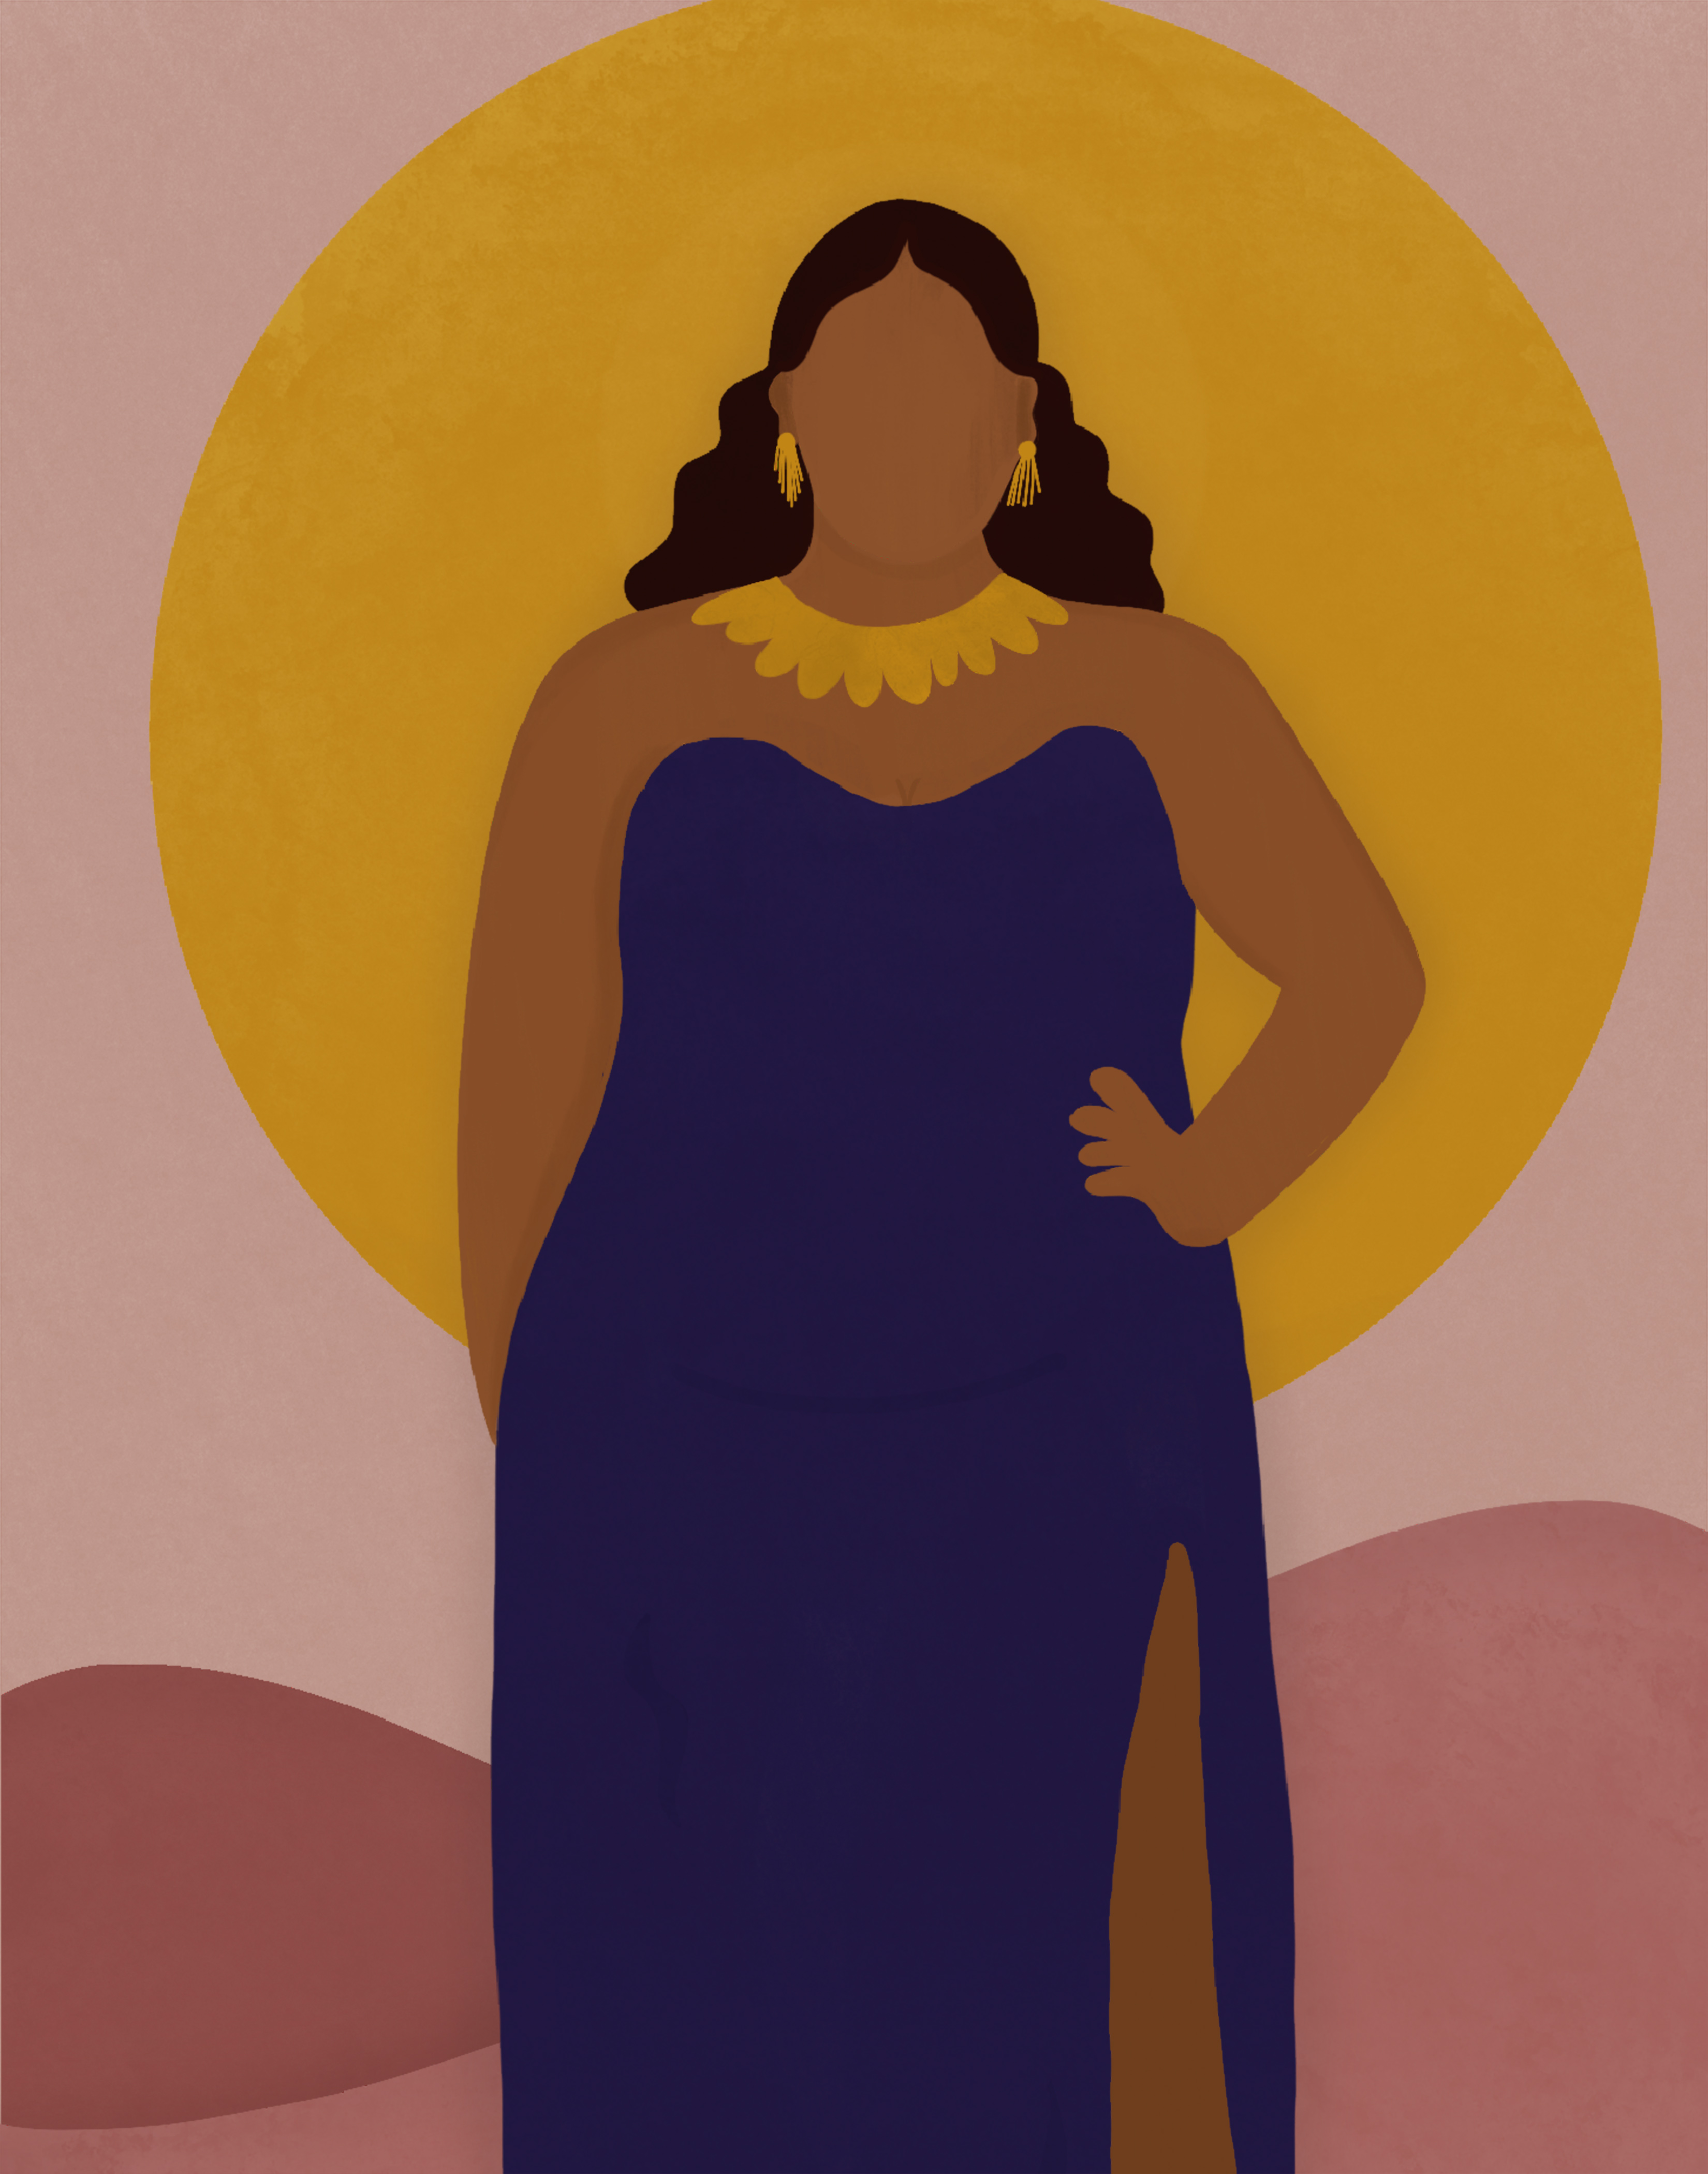 A woman in a cobalt dress stands in front of pink hills and a gold sun.